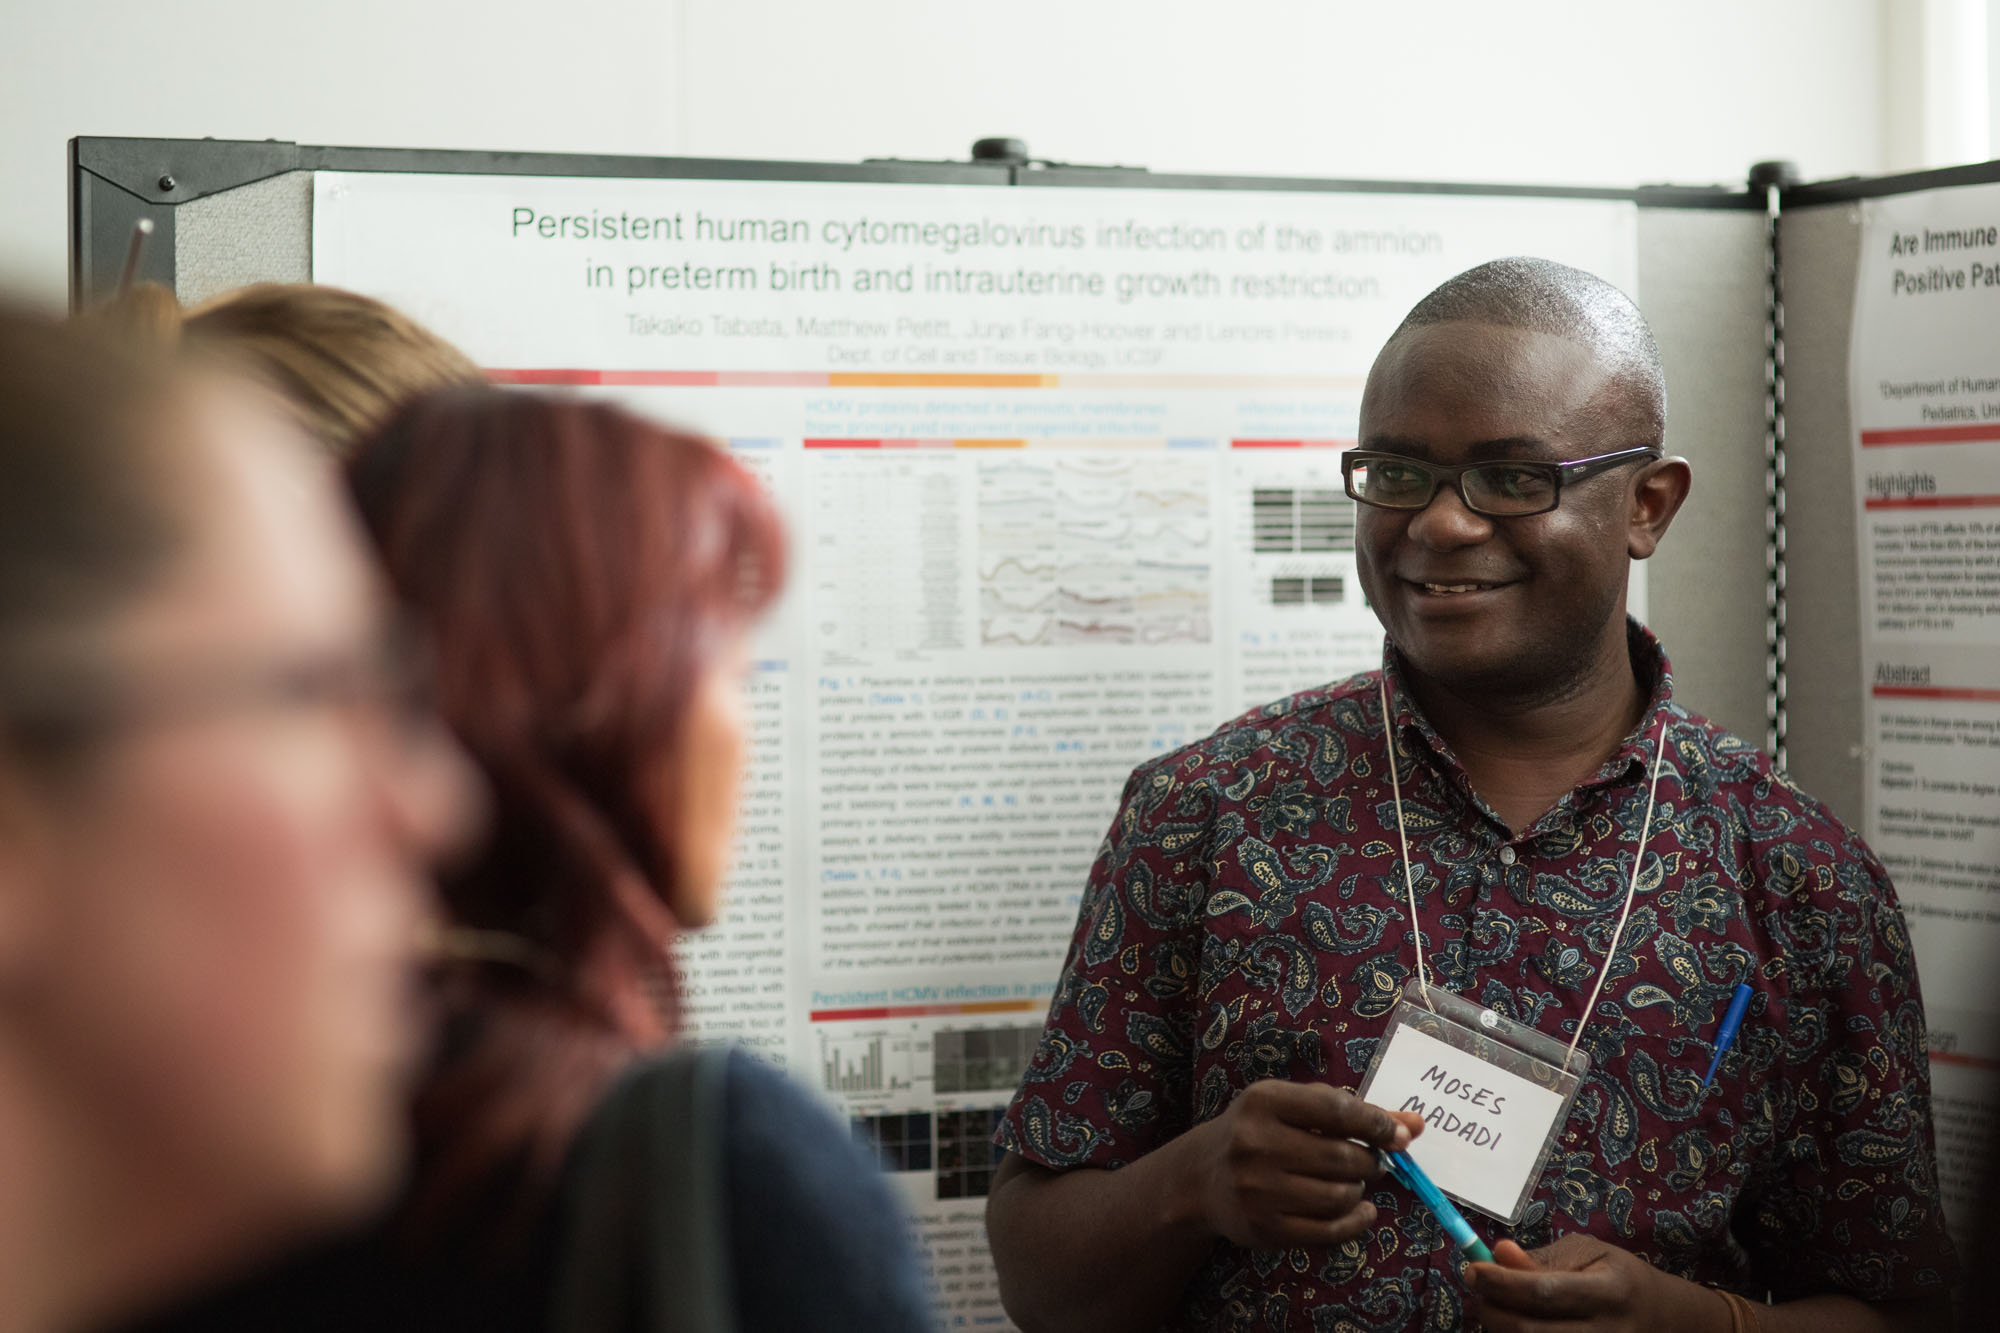 Researchers explaining his poster at the symposium poster session